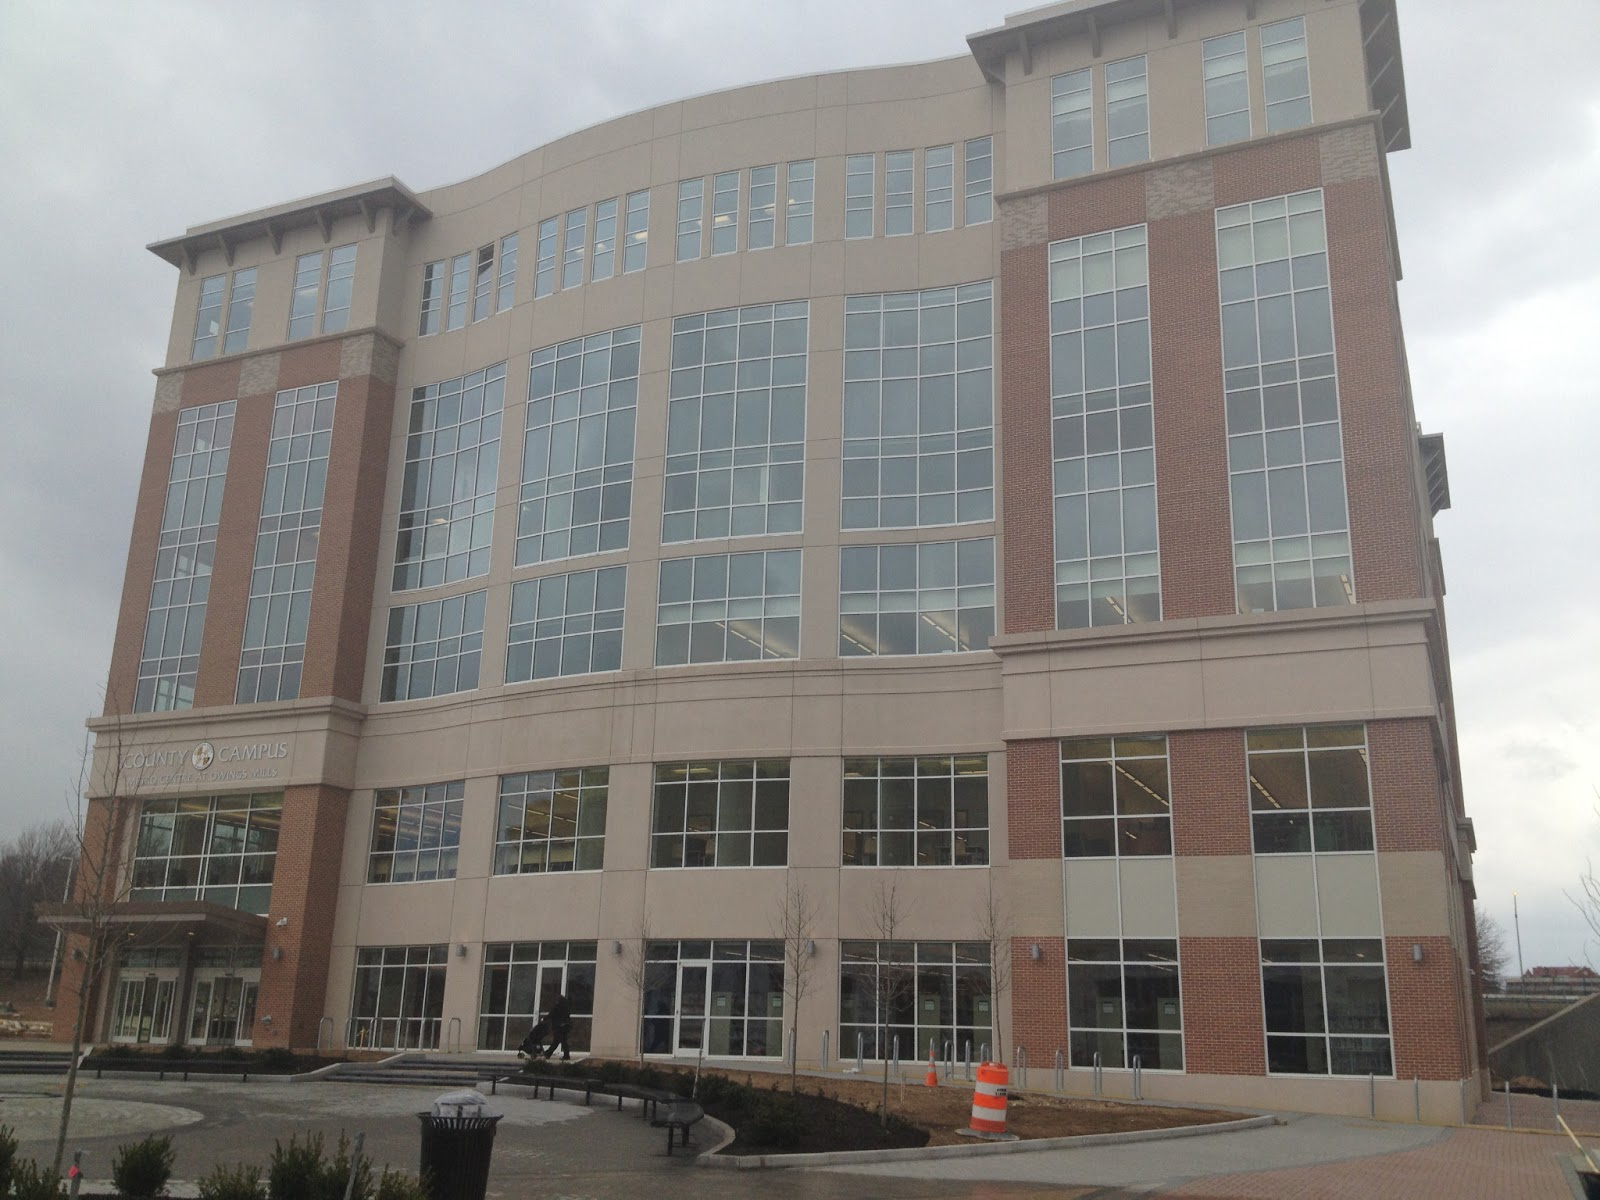 If You Re Not Familiar With The Area Library Is Located In Former Parking Lot Of Owings Mills Metro Subway